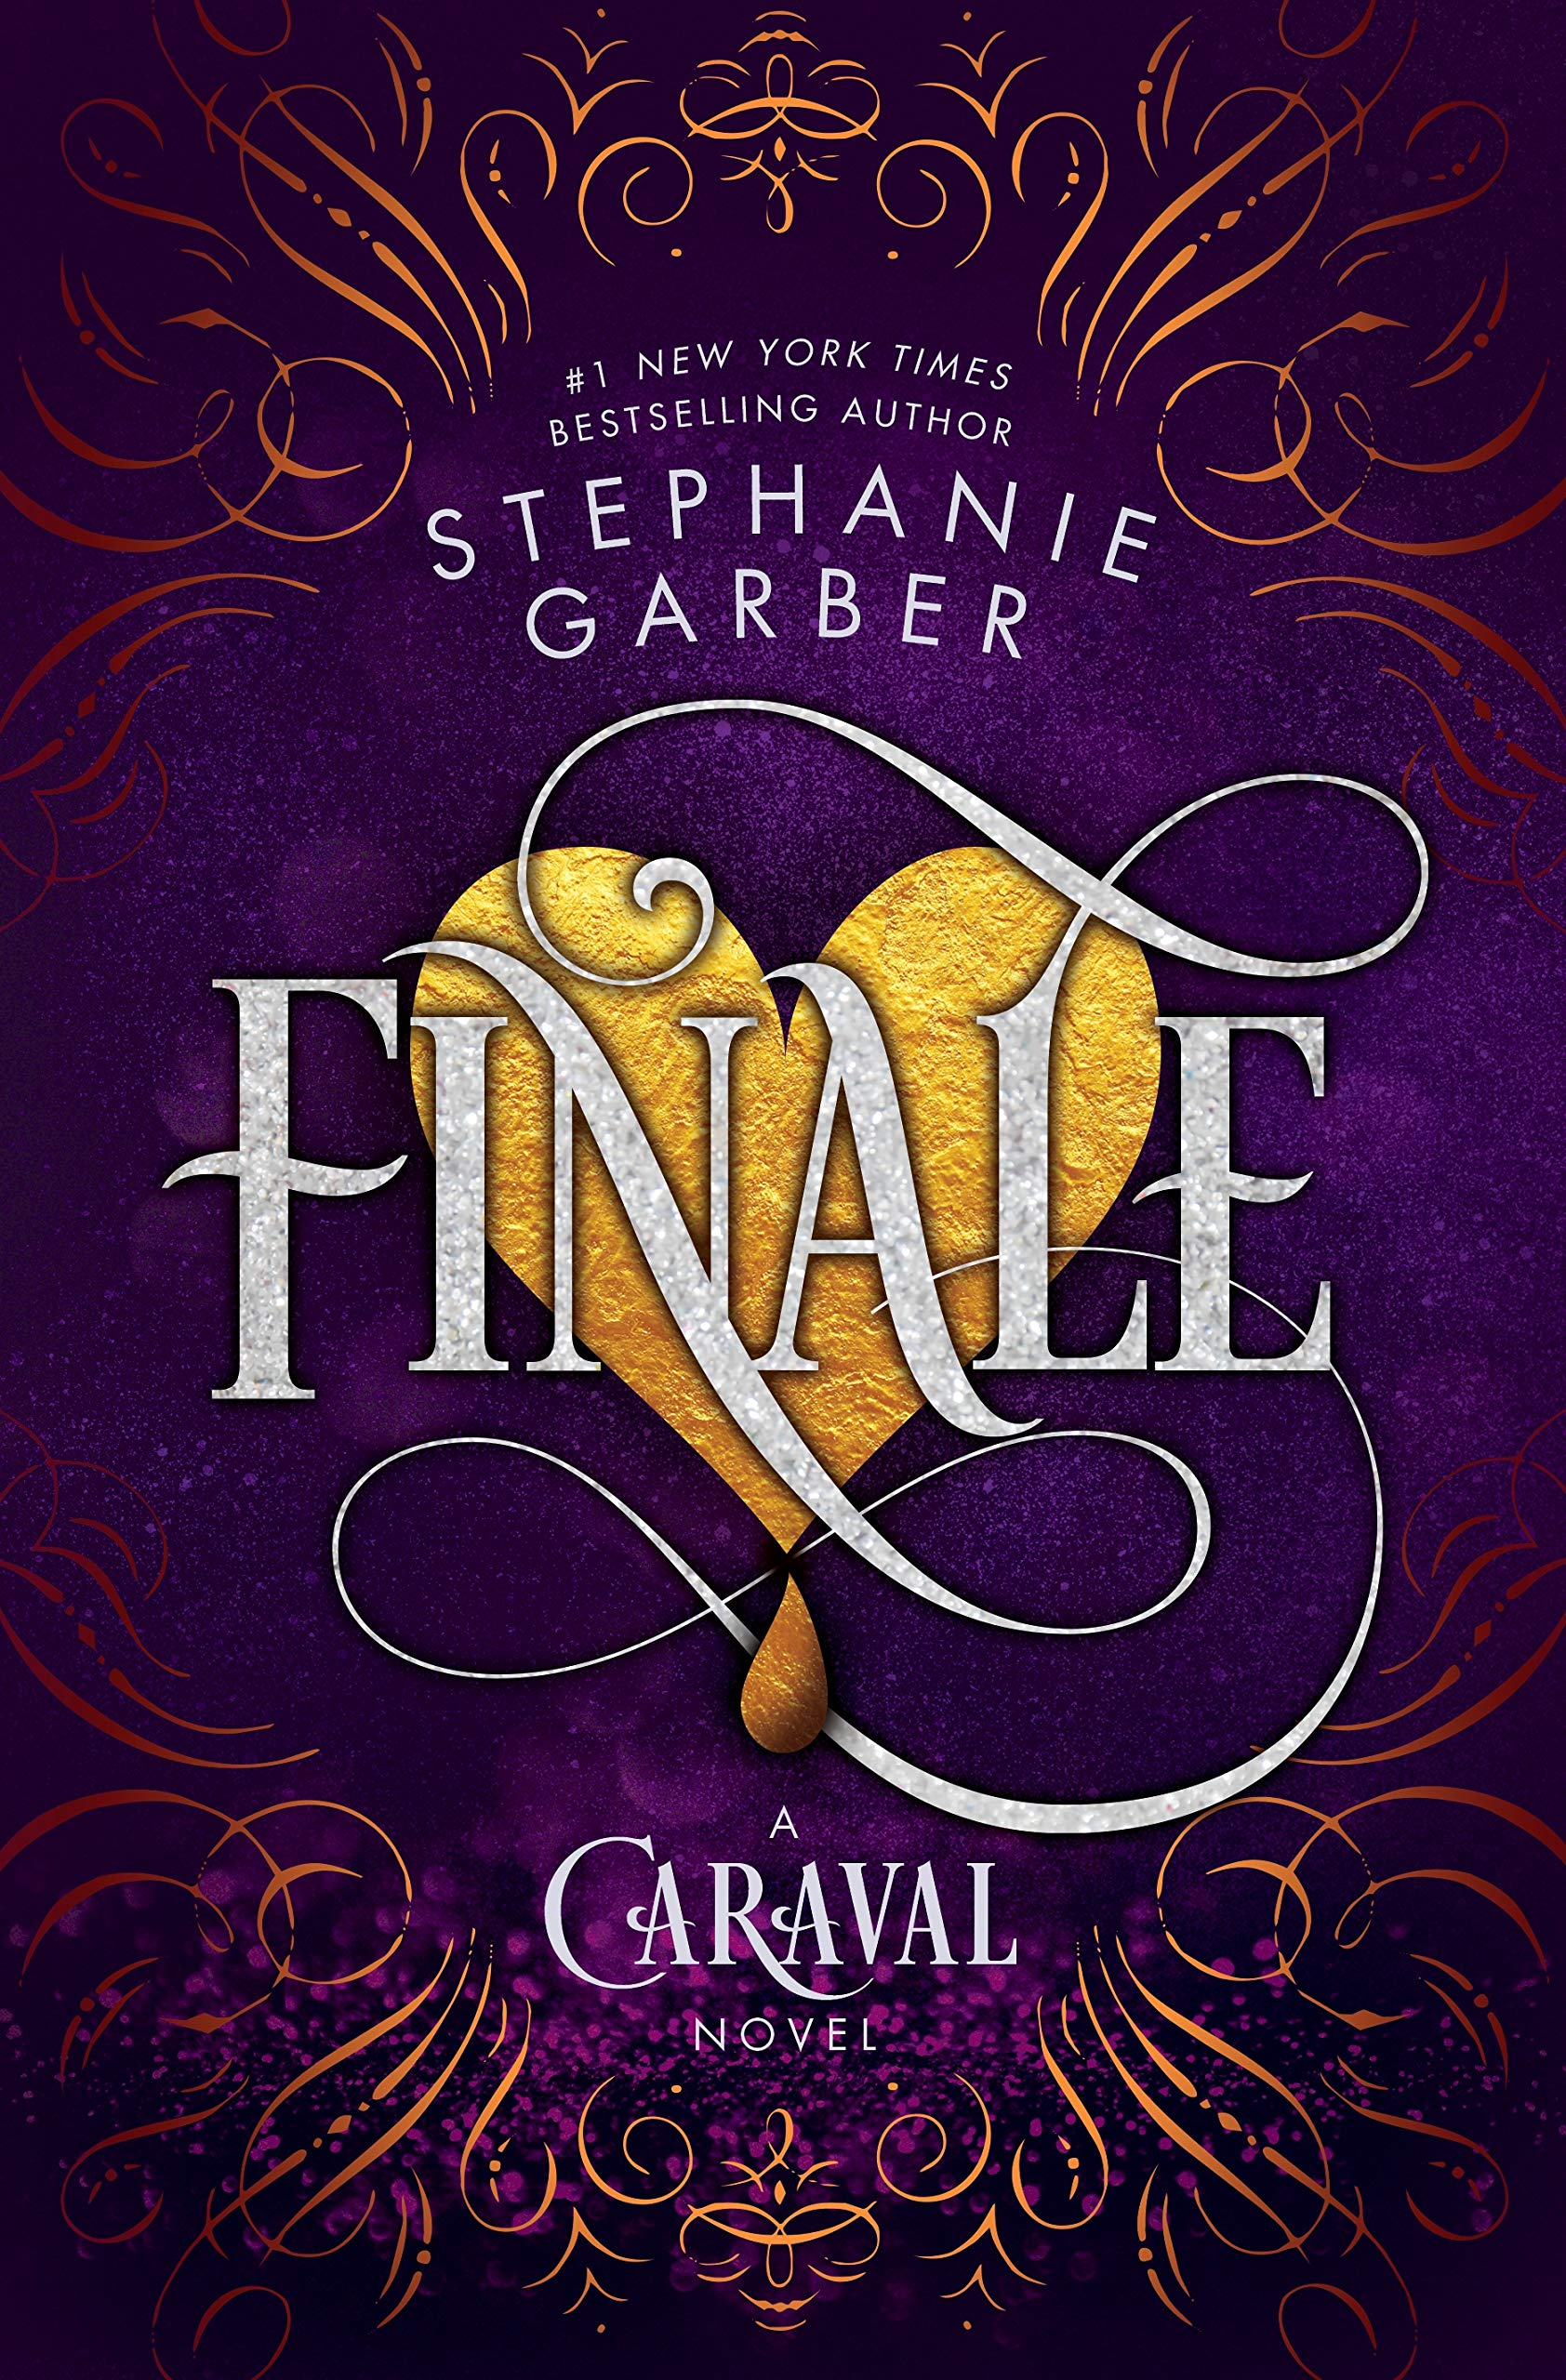 Image result for finale caraval cover